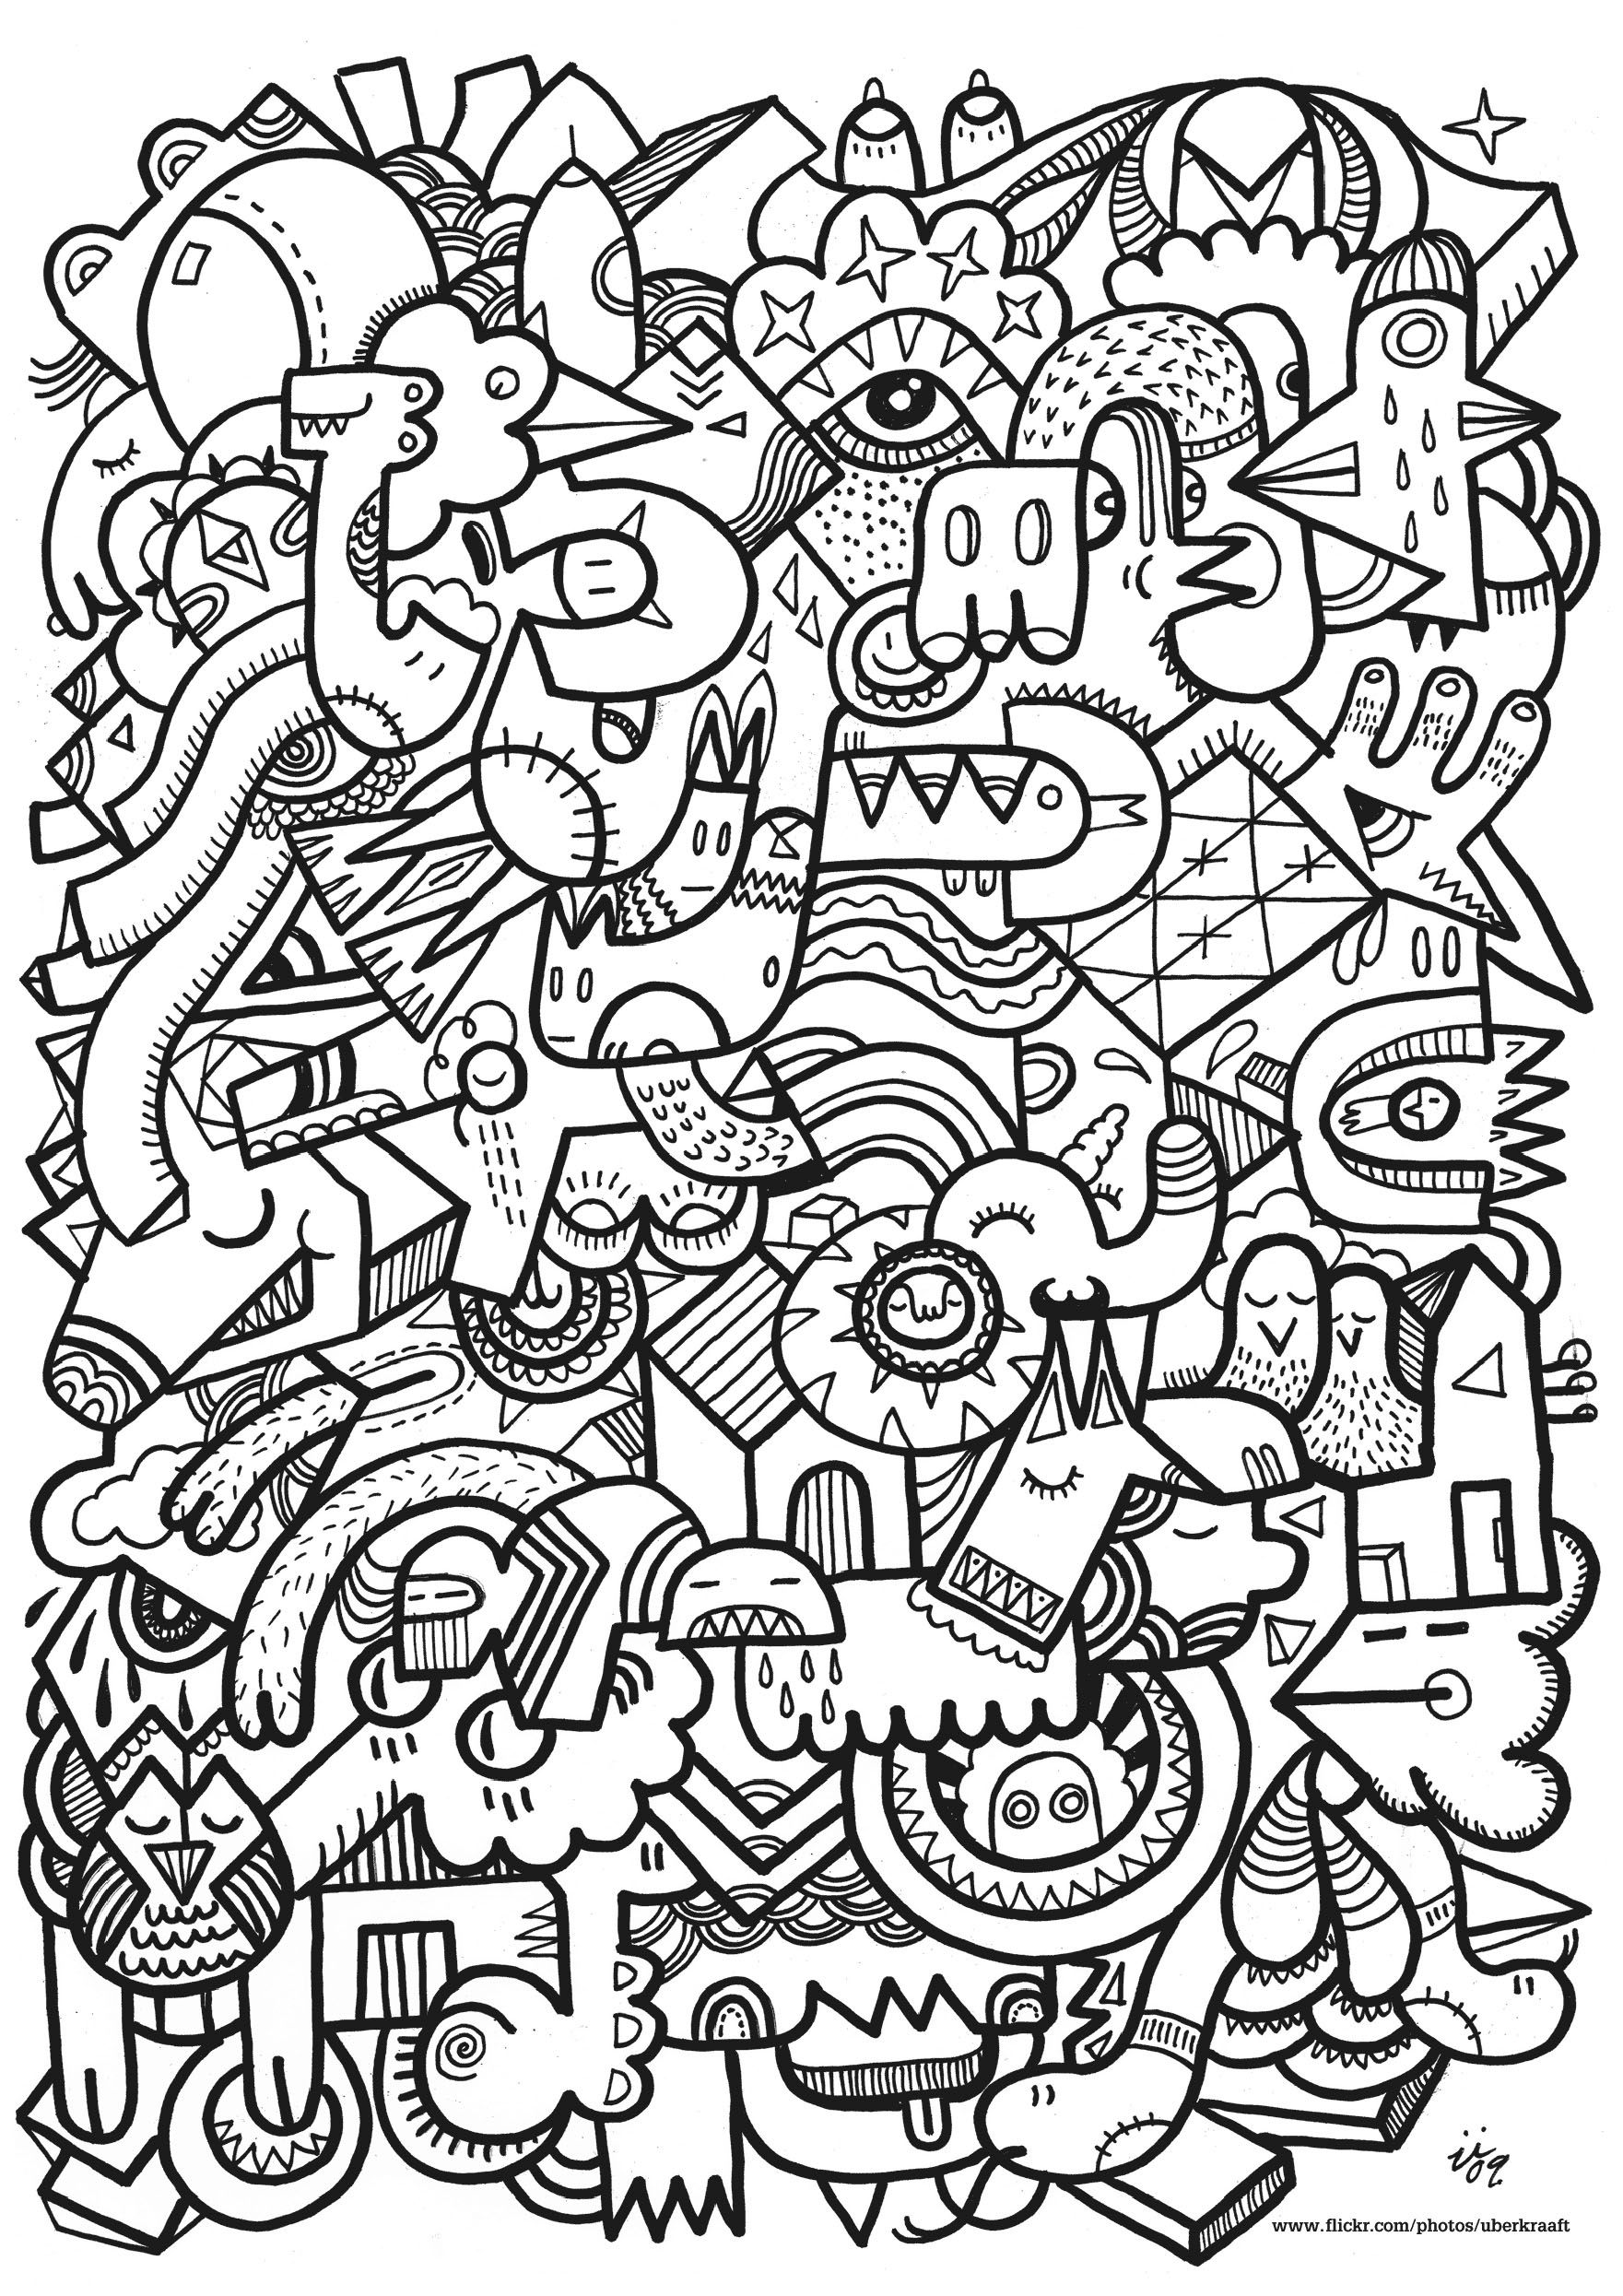 Free coloring page coloring-doodle-art-doodling-16. Doodling and ...